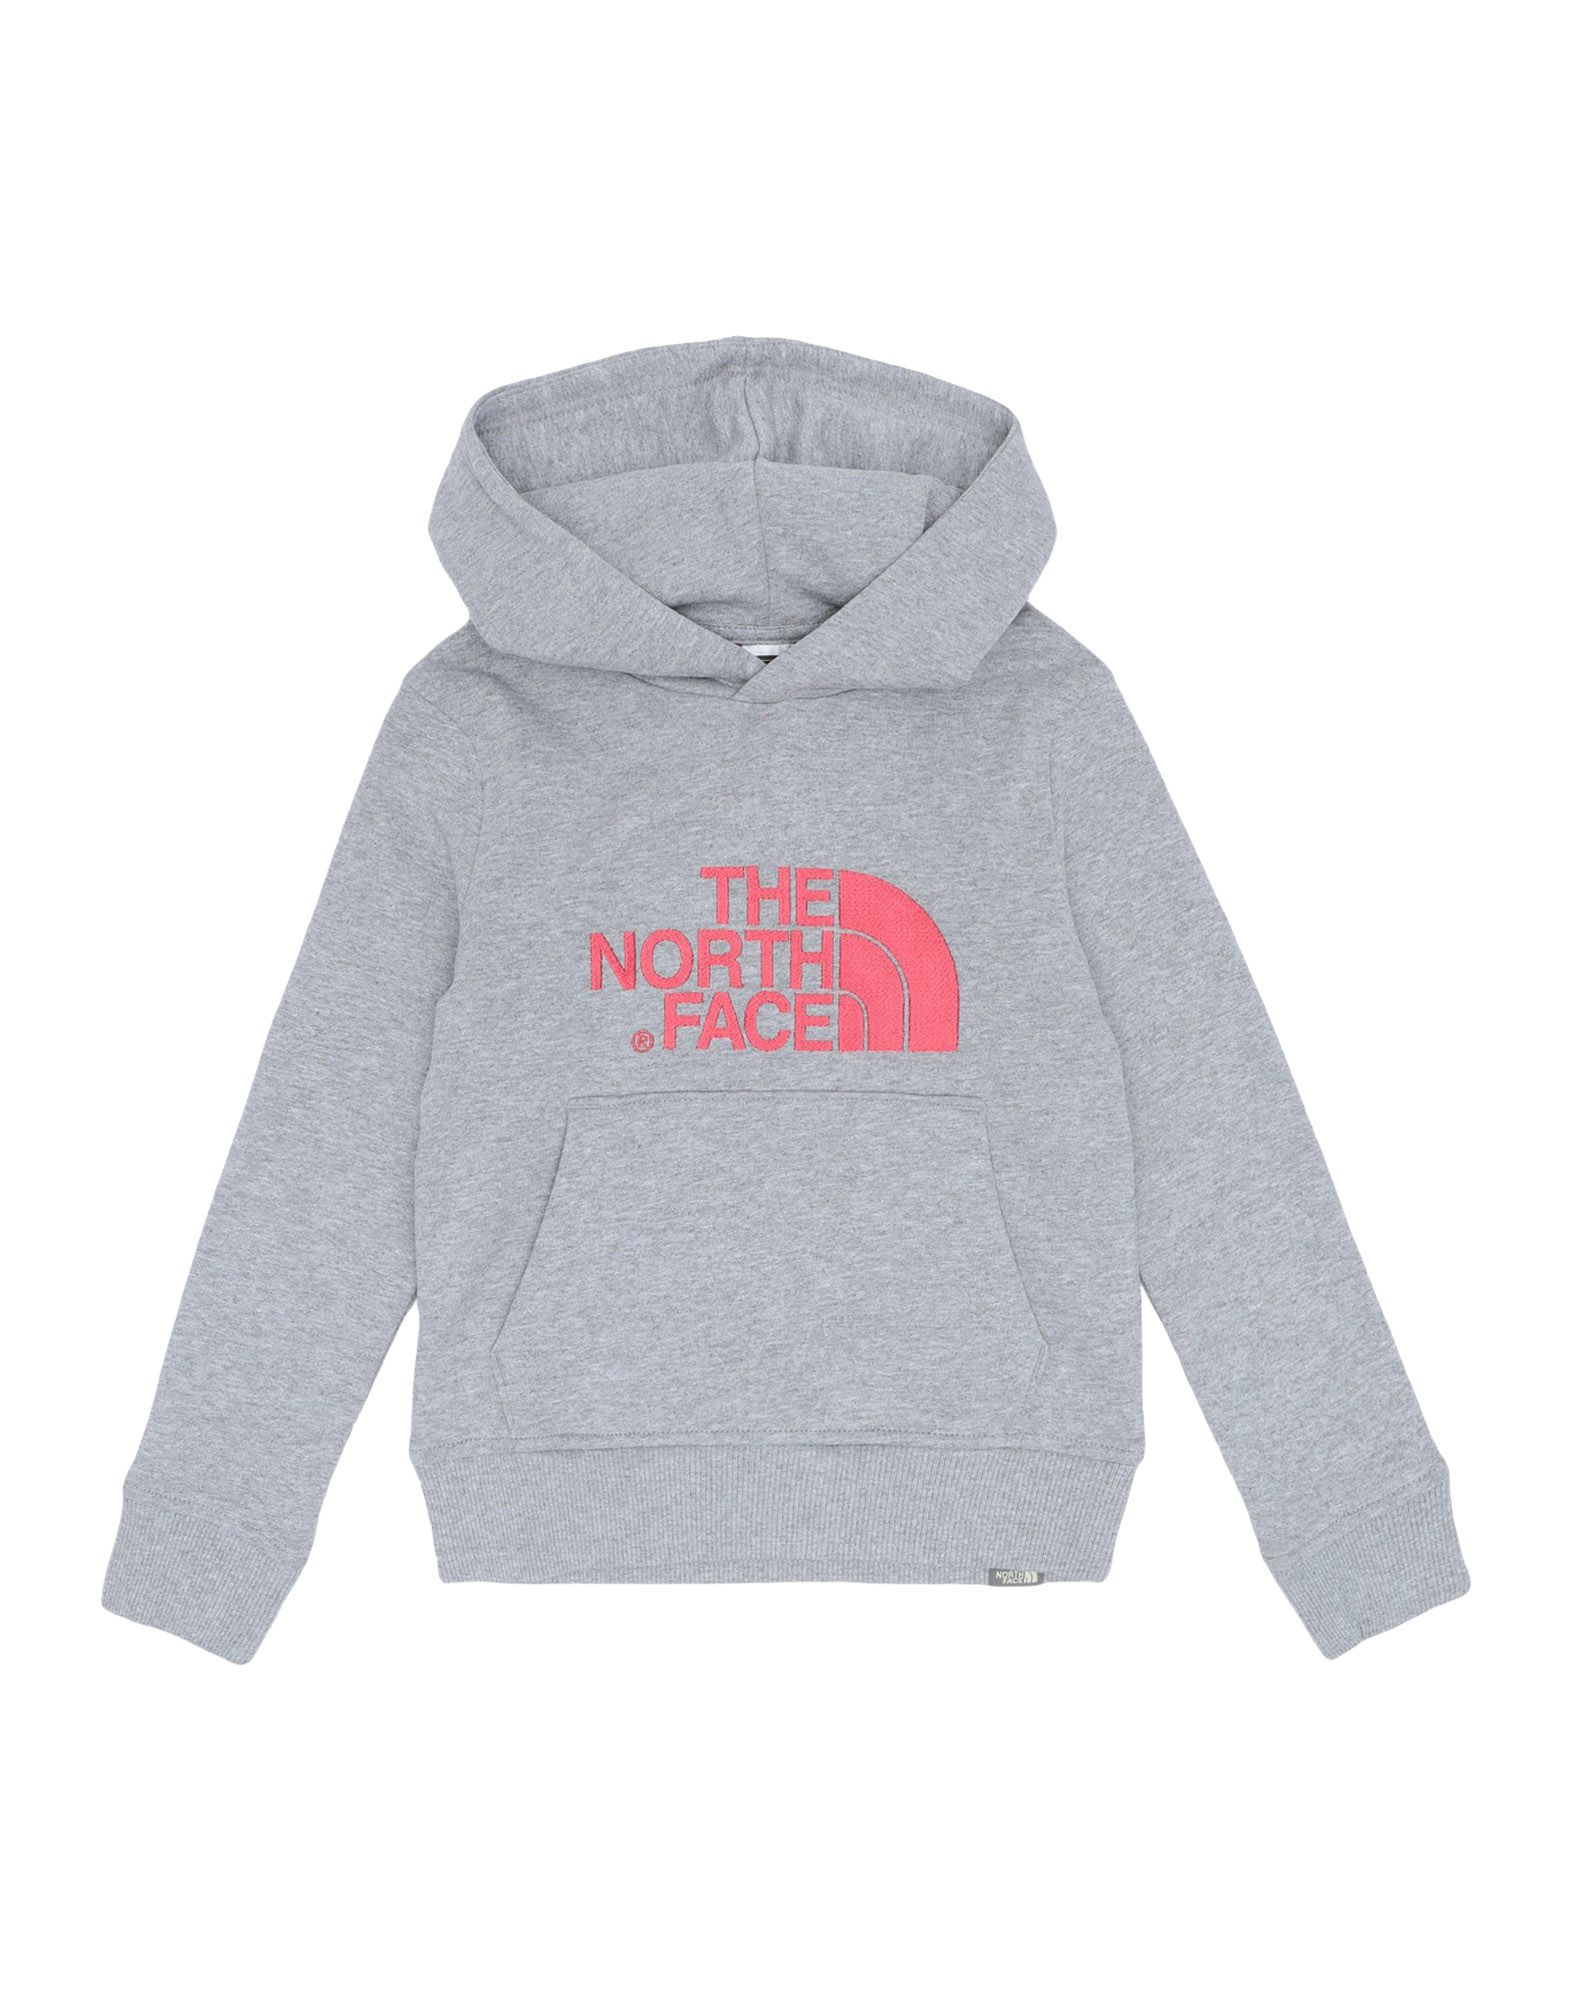 The North Face Sweatshirt Girl 3-8 years online on YOOX Netherlands 12391b1b0